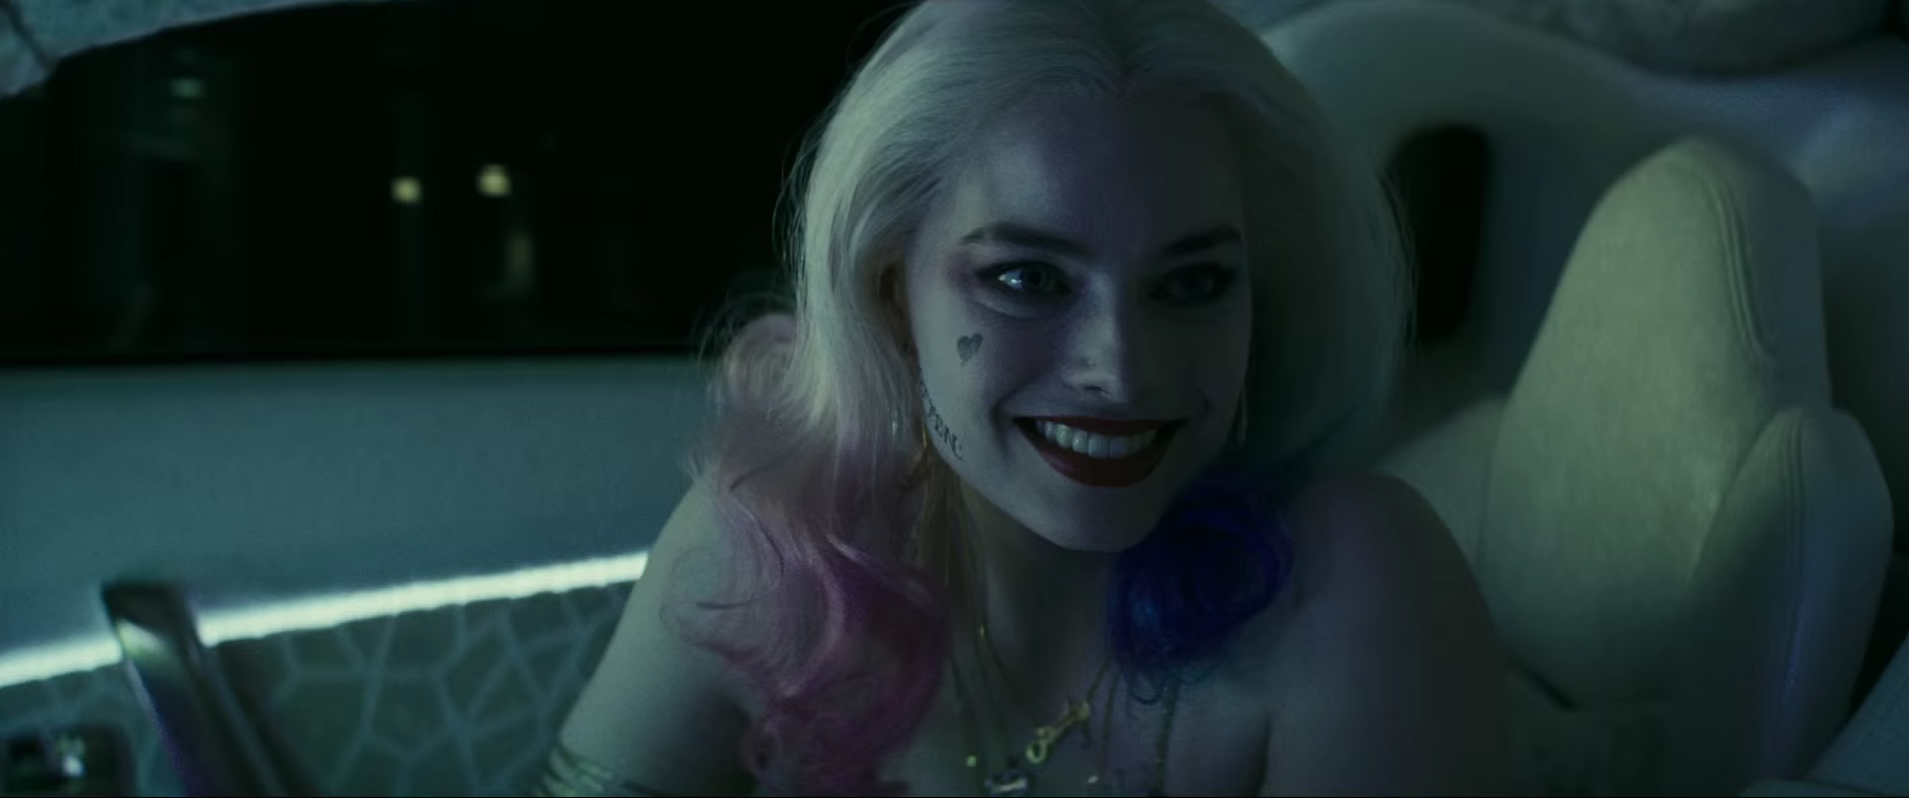 Harley Quinn Margot Robbie Smile